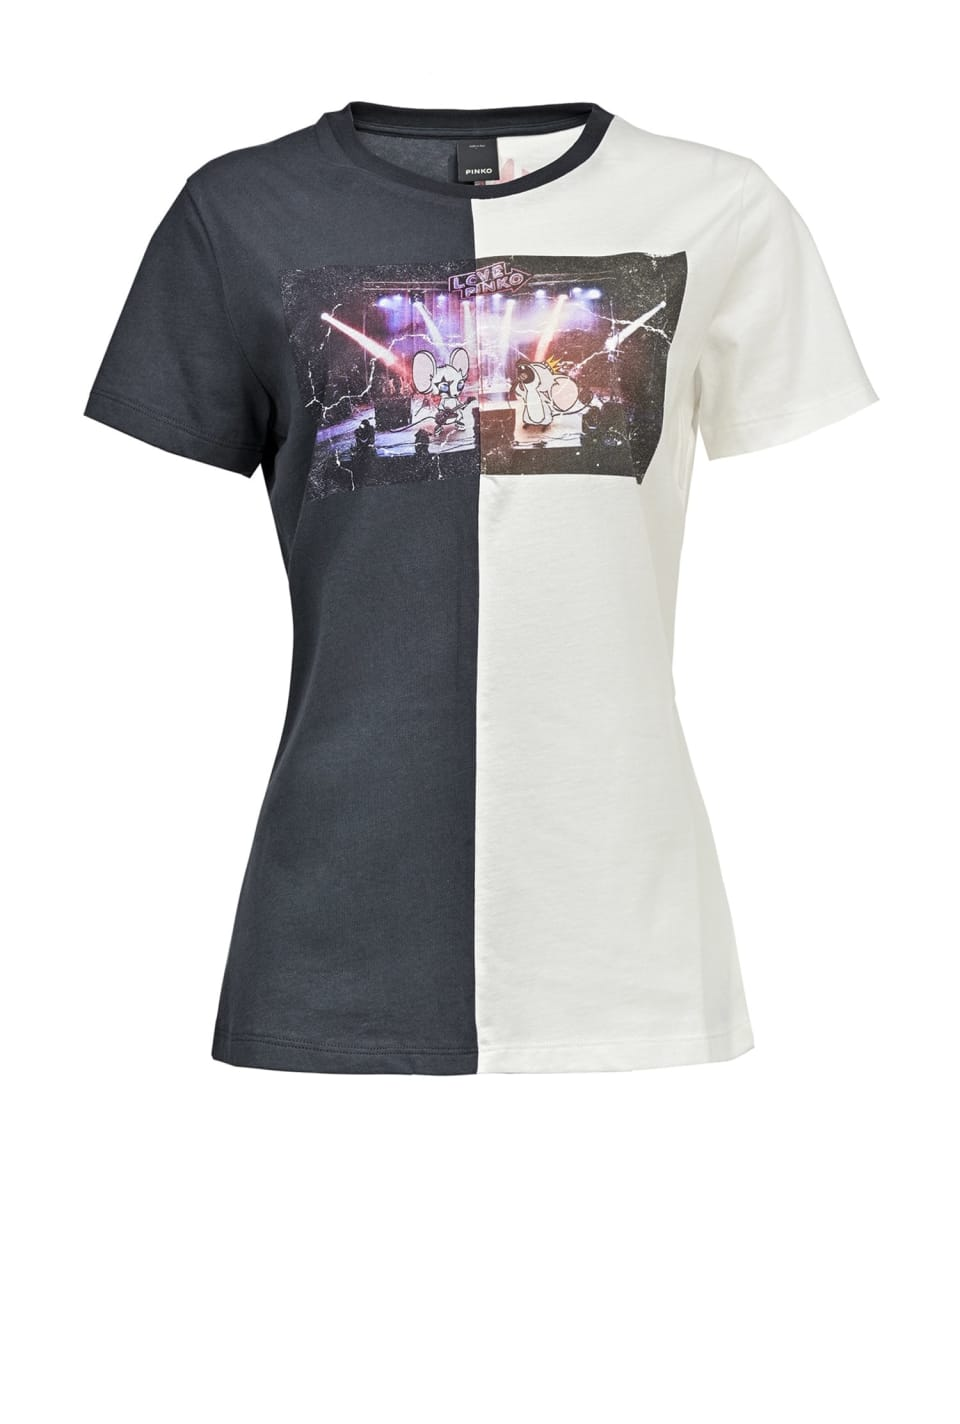 Two-tone Rocky Mouse Concert T-shirt